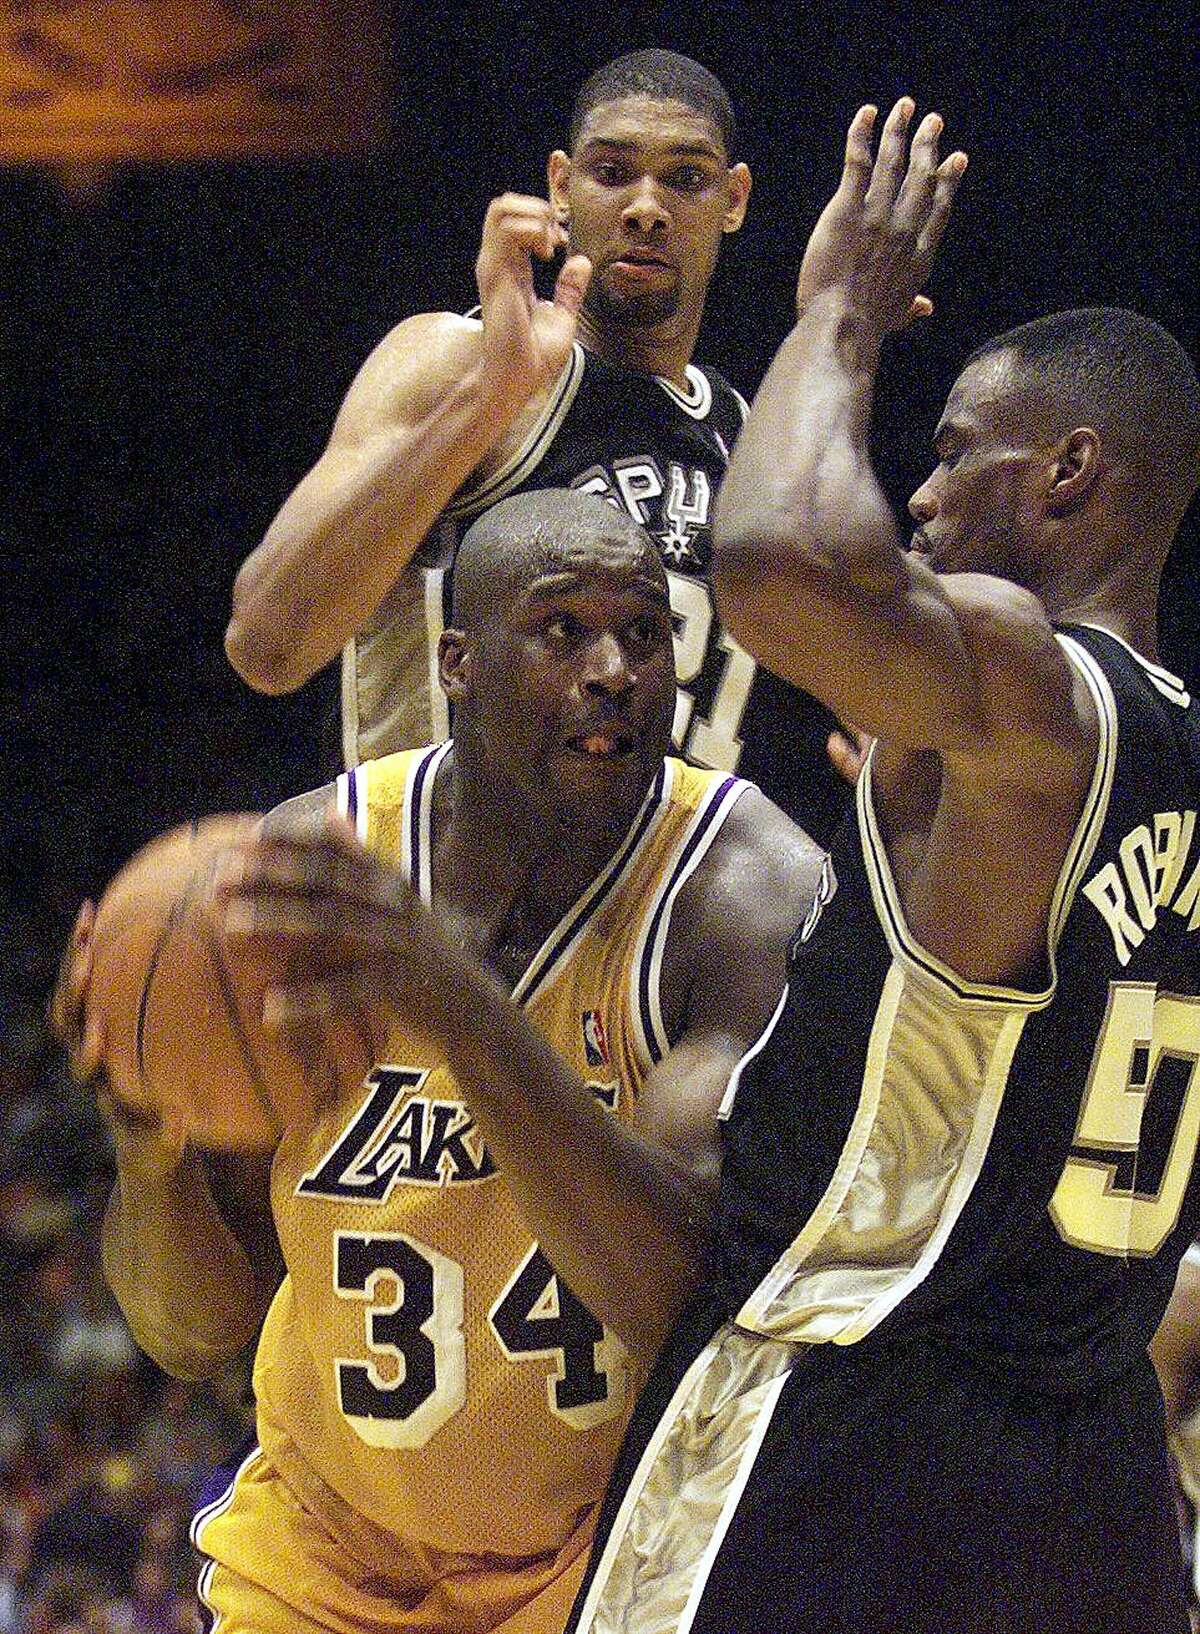 The Los Angeles Laker Shaquille O'Neal, center, goes up against the San Antonio Spurs' Tim Duncan, behind, and David Robinson during a Western Conference semifinals game in May of 1999. The Spurs defeated the Lakers 118-107 to advance to the Western Conference Finals.